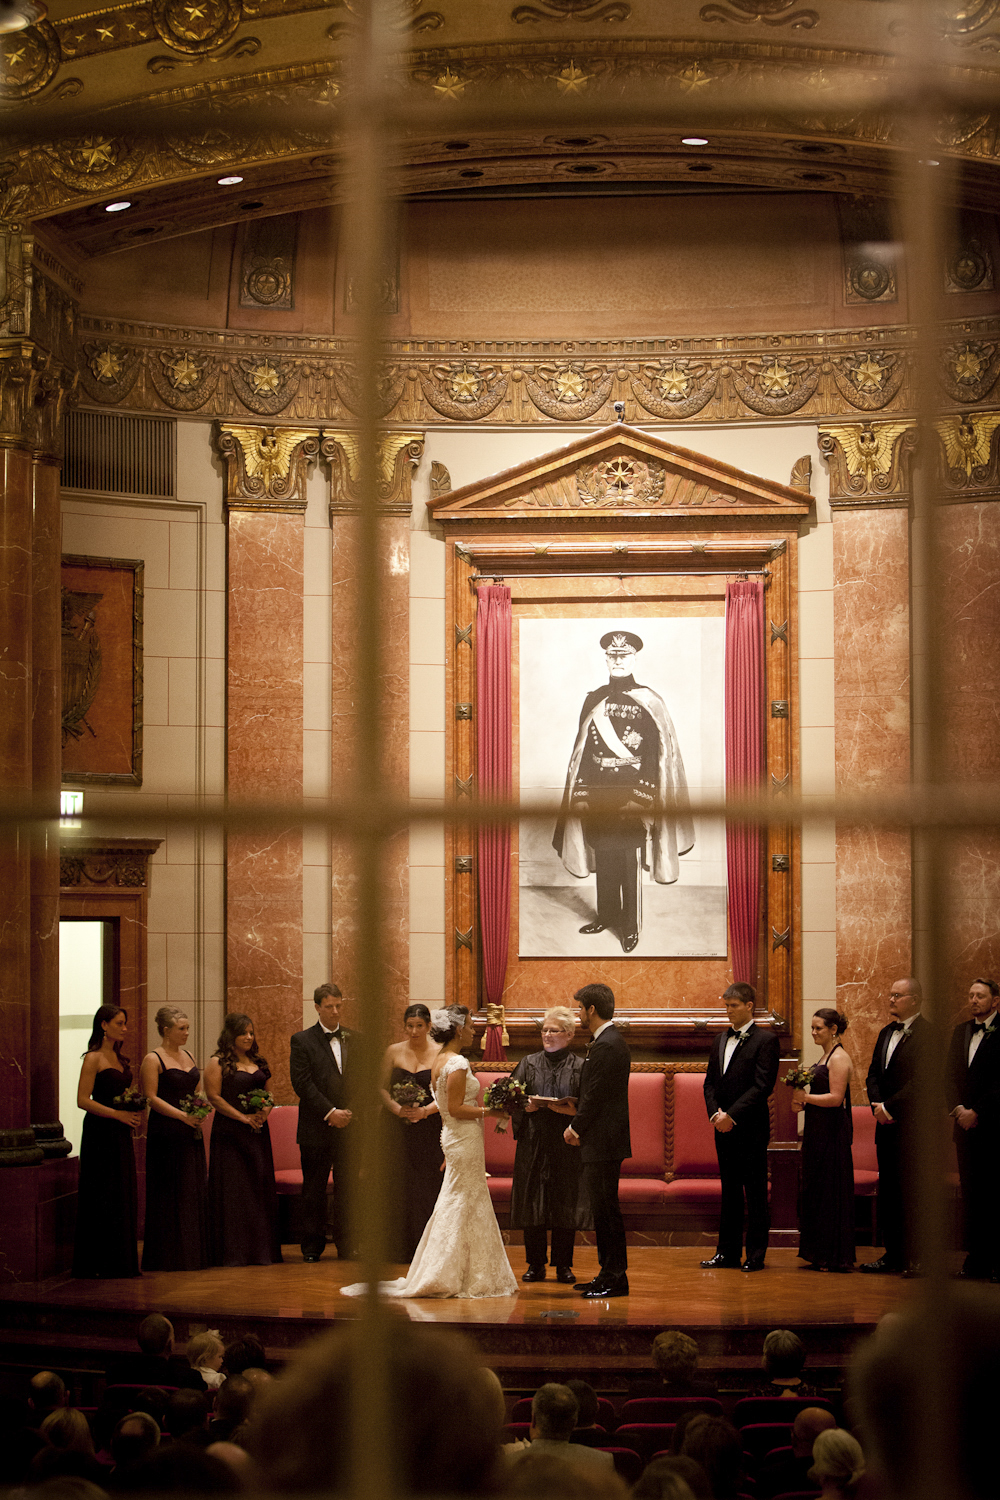 Indianapolis-Indiana-War-Memorial-Wedding-Photographer-Crowes-Eye-Photography-Bride-Groom-Ceremony-342.jpg